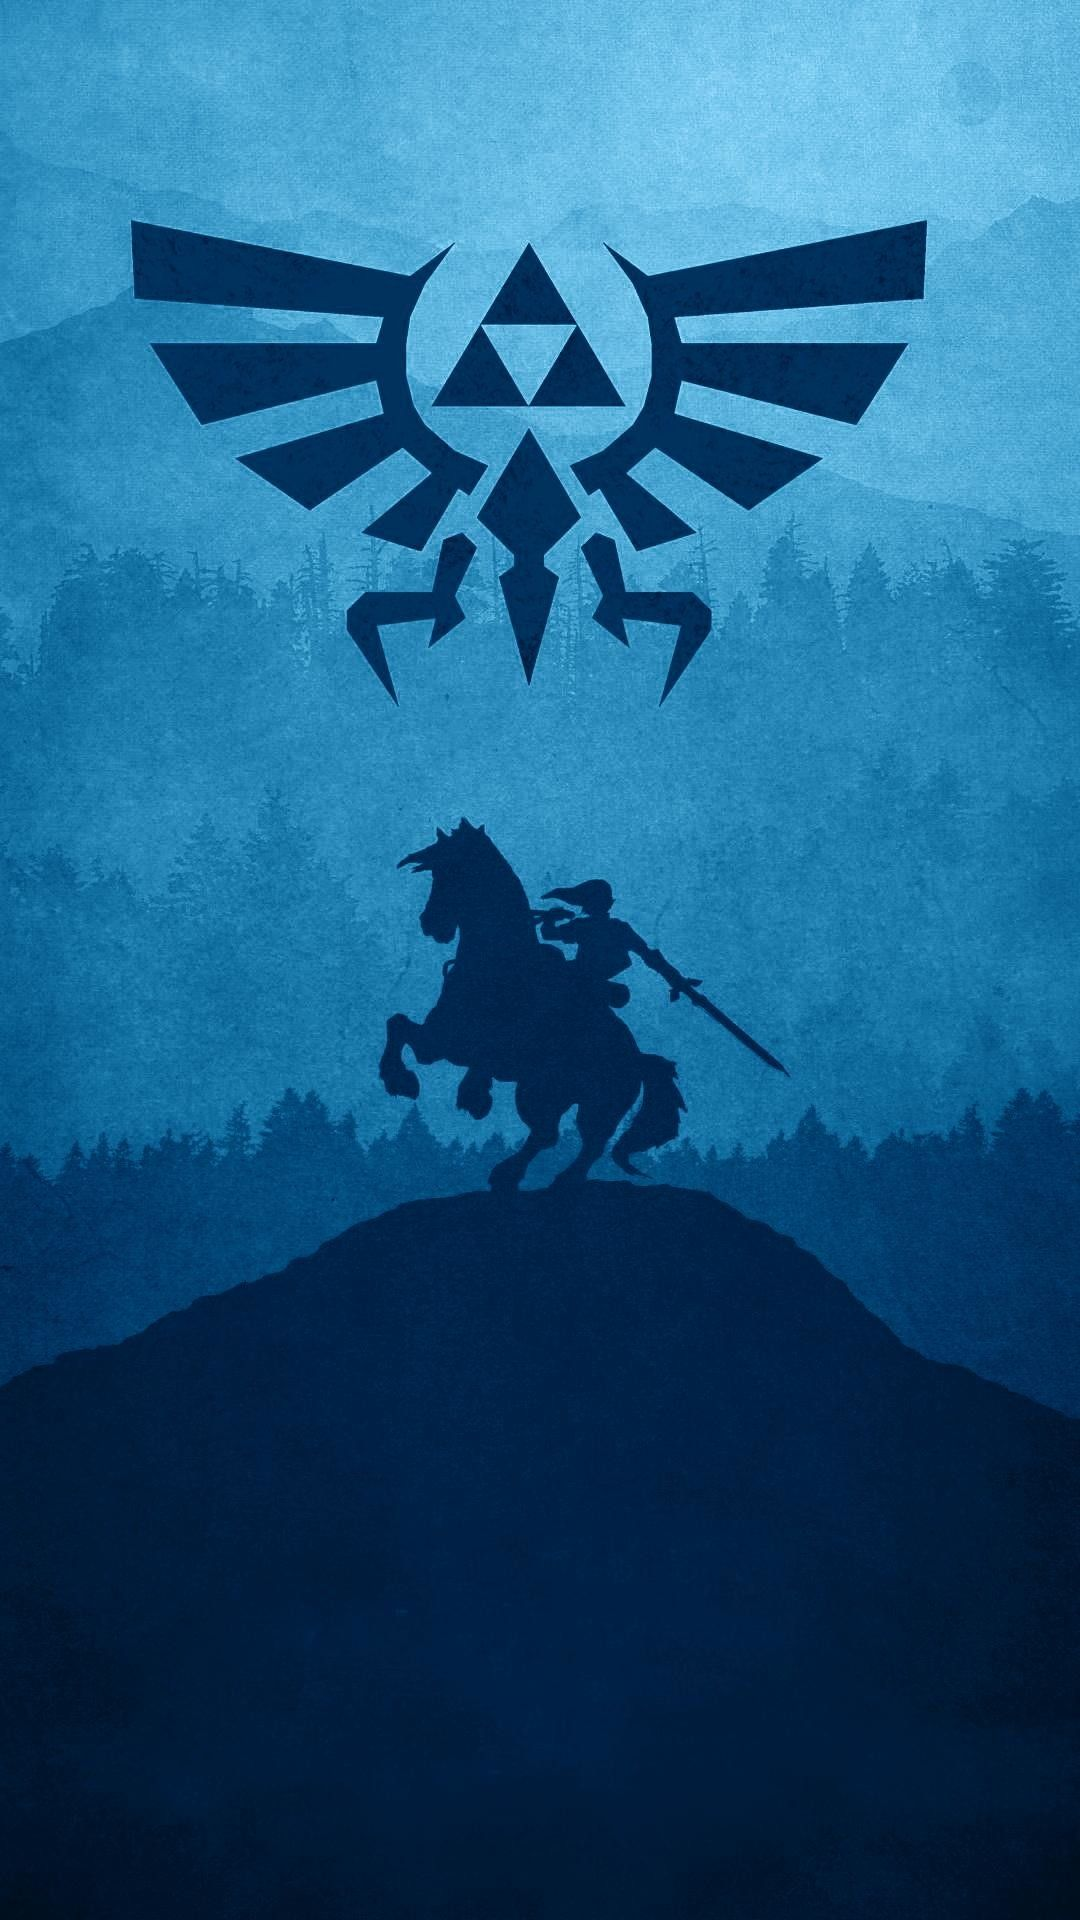 1080x1920 IPhone The legend of zelda Wallpapers HD Desktop